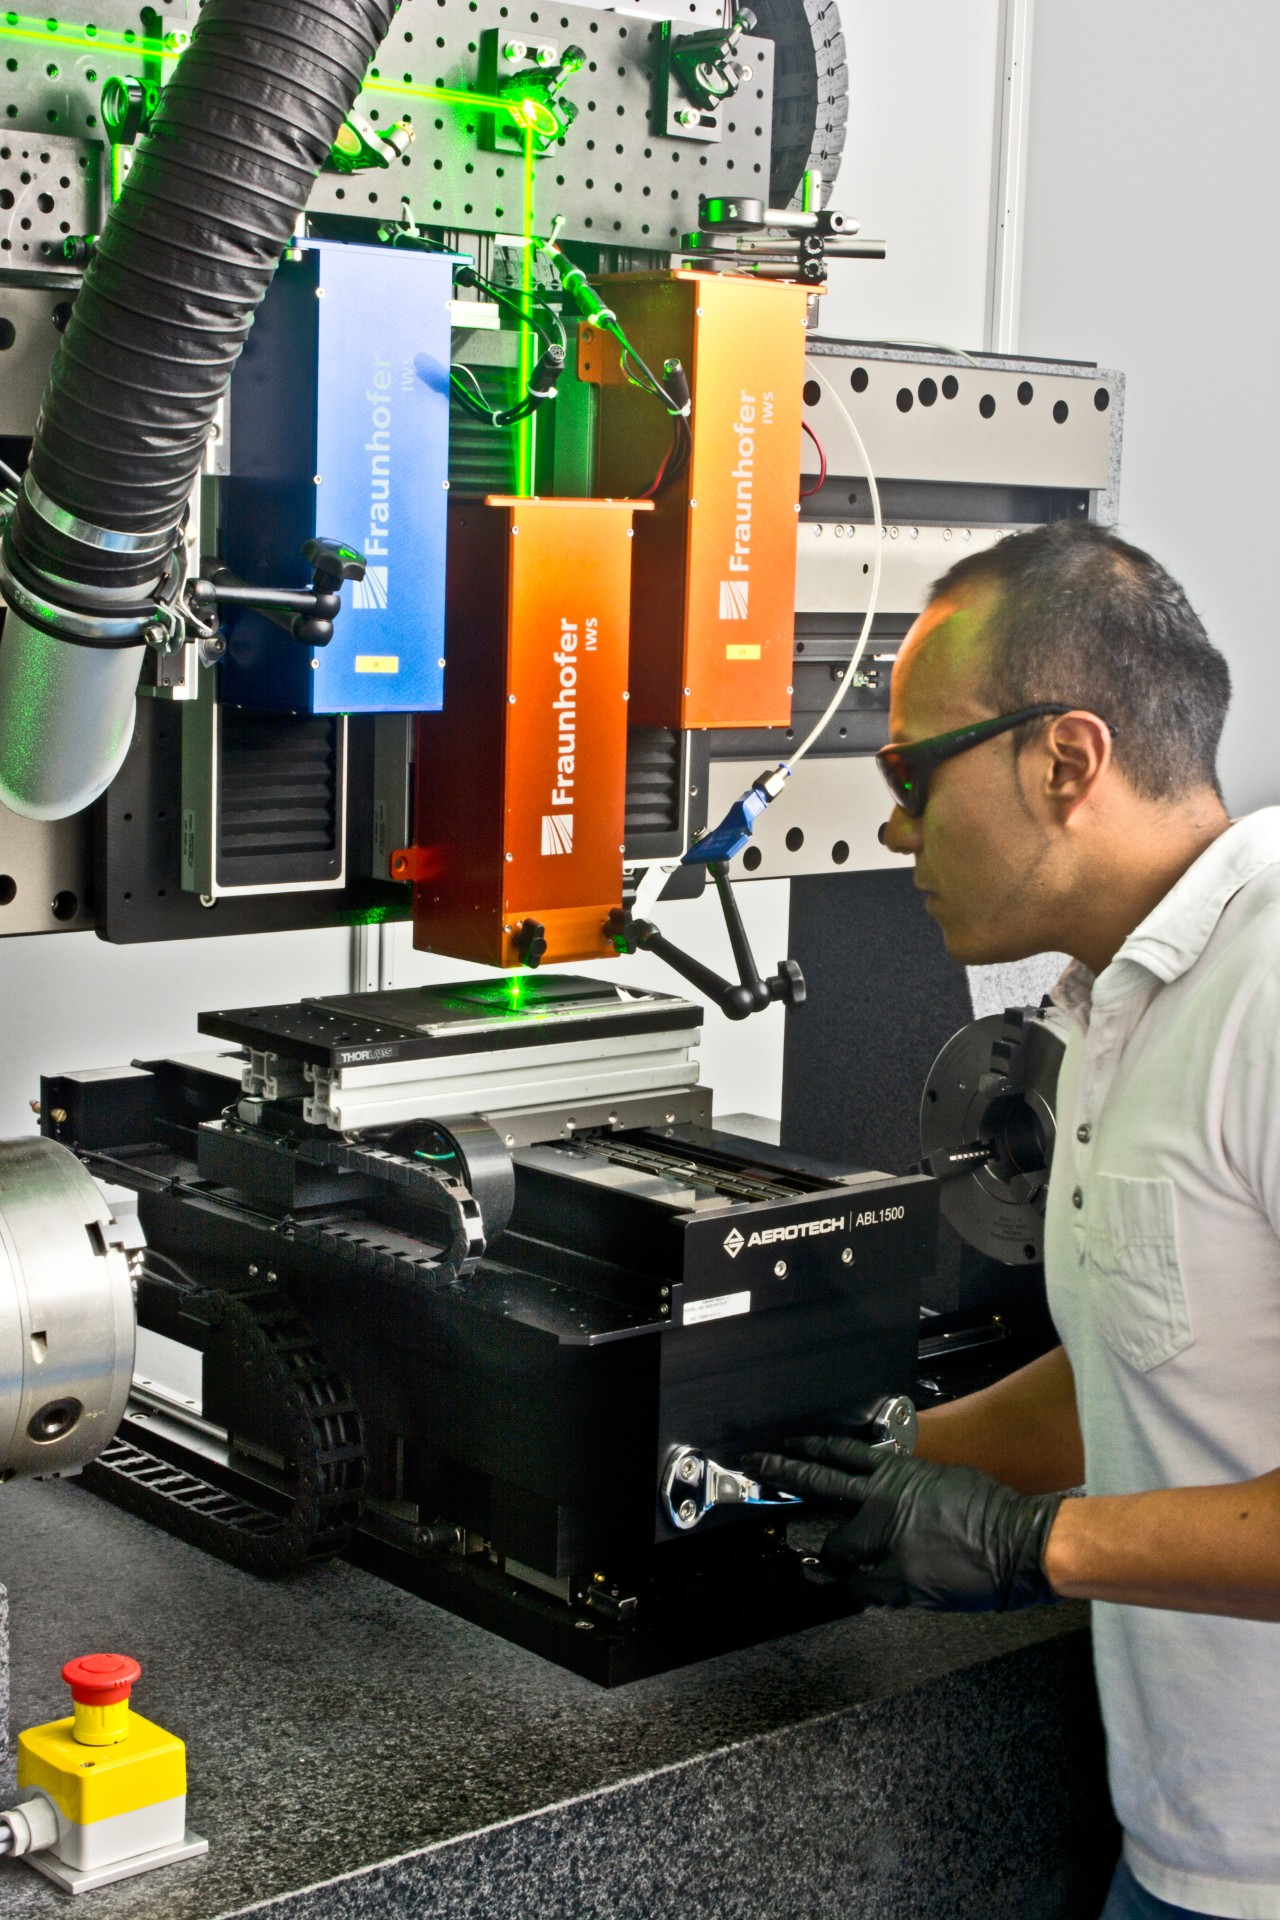 Alfredo Aguilar, Scientist with the team Surface Functionalization at Fraunhofer IWS, operates the world's largest 3D DLIP system based at TU Dresden.